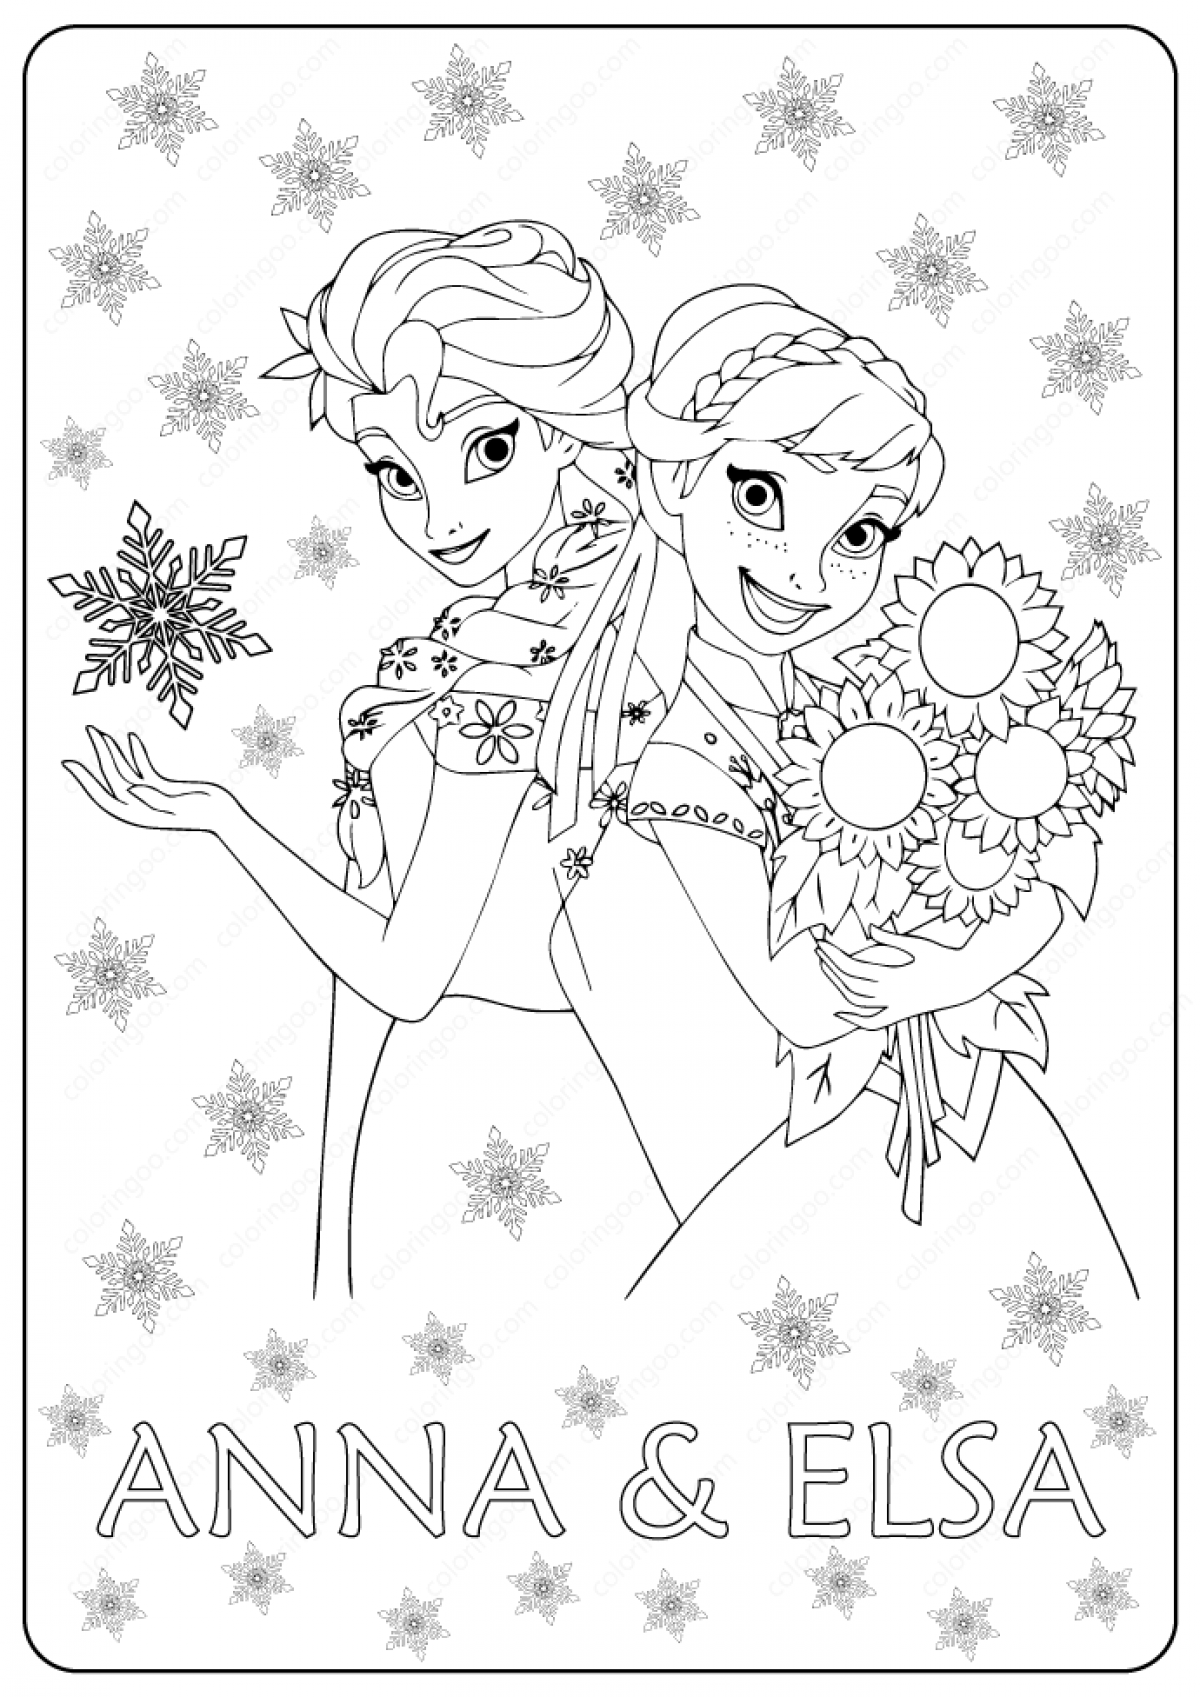 Ana Frozen 2 Coloring Pages - Coloring Home